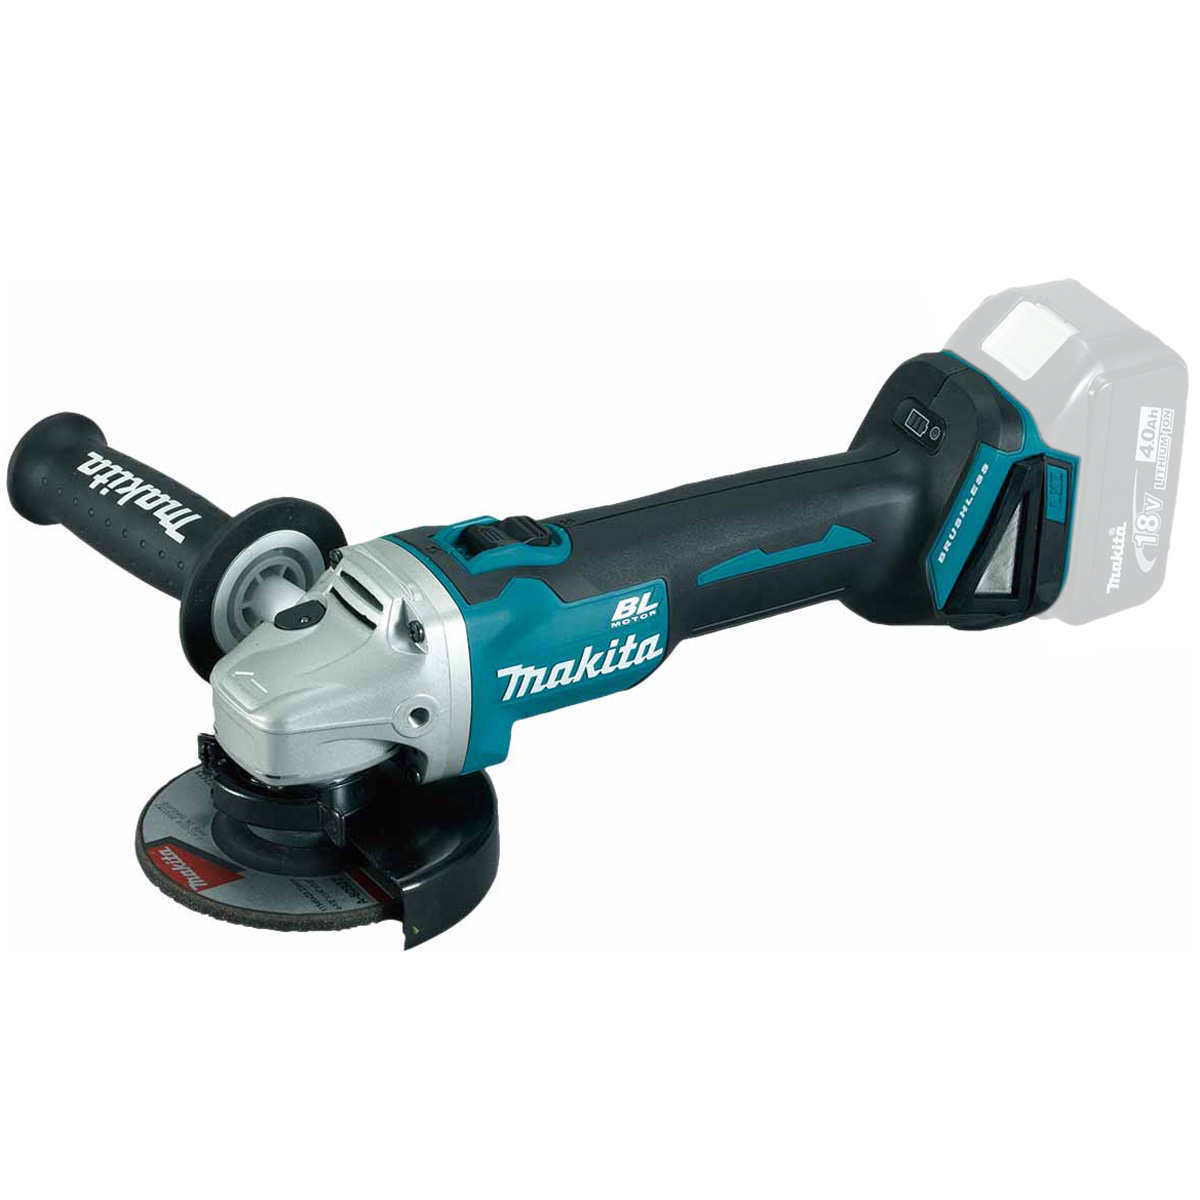 MAKITA 18V BRUSHLESS 115MM ANGLE GRINDER LXT - DGA454 - BODY ONLY